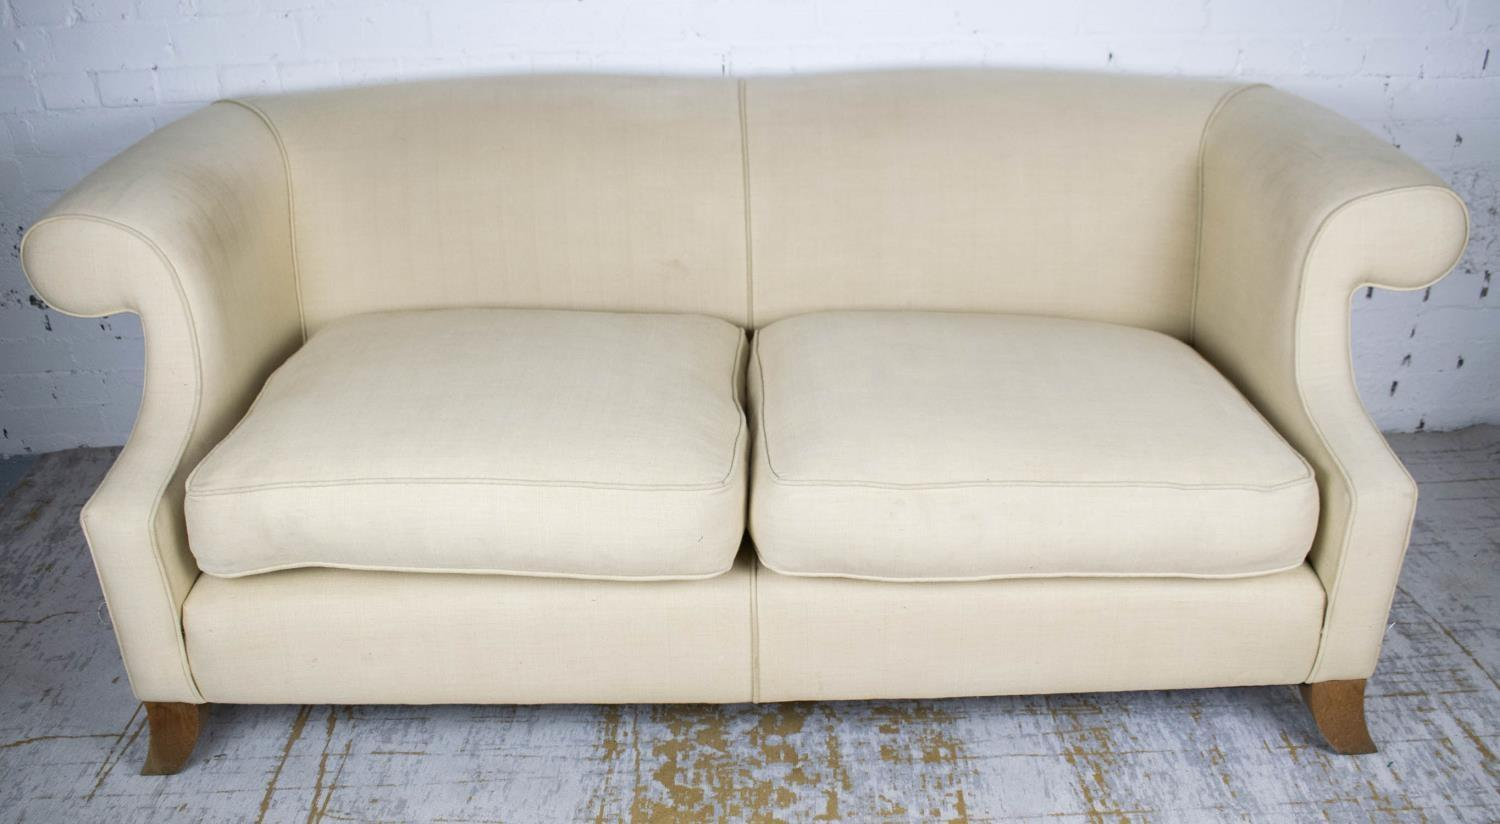 LINLEY SOFA, by David Linley, 77cm H x 203cm L x 98cm D. (with faults)